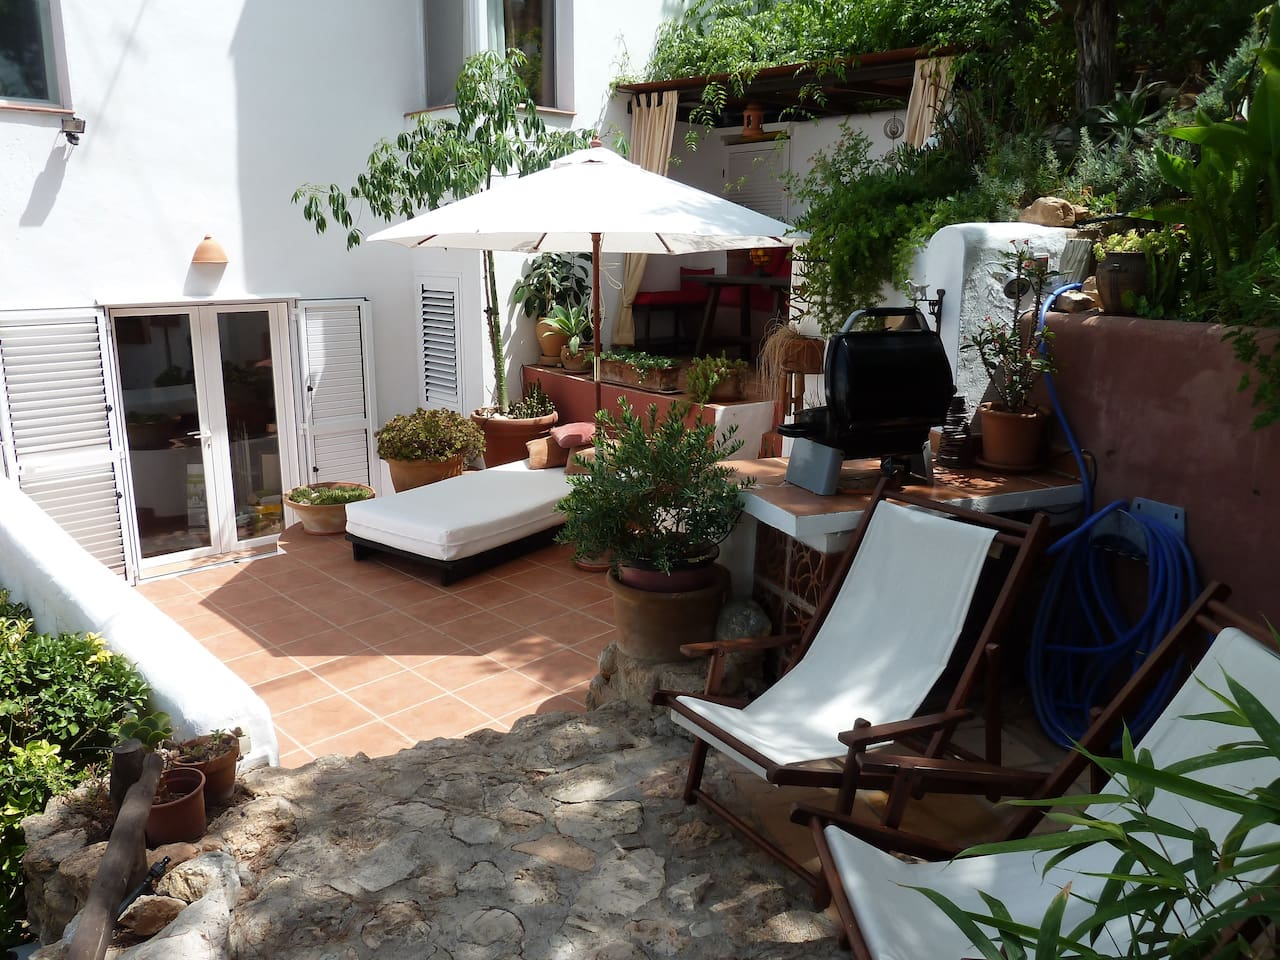 A shady terrace to relax on